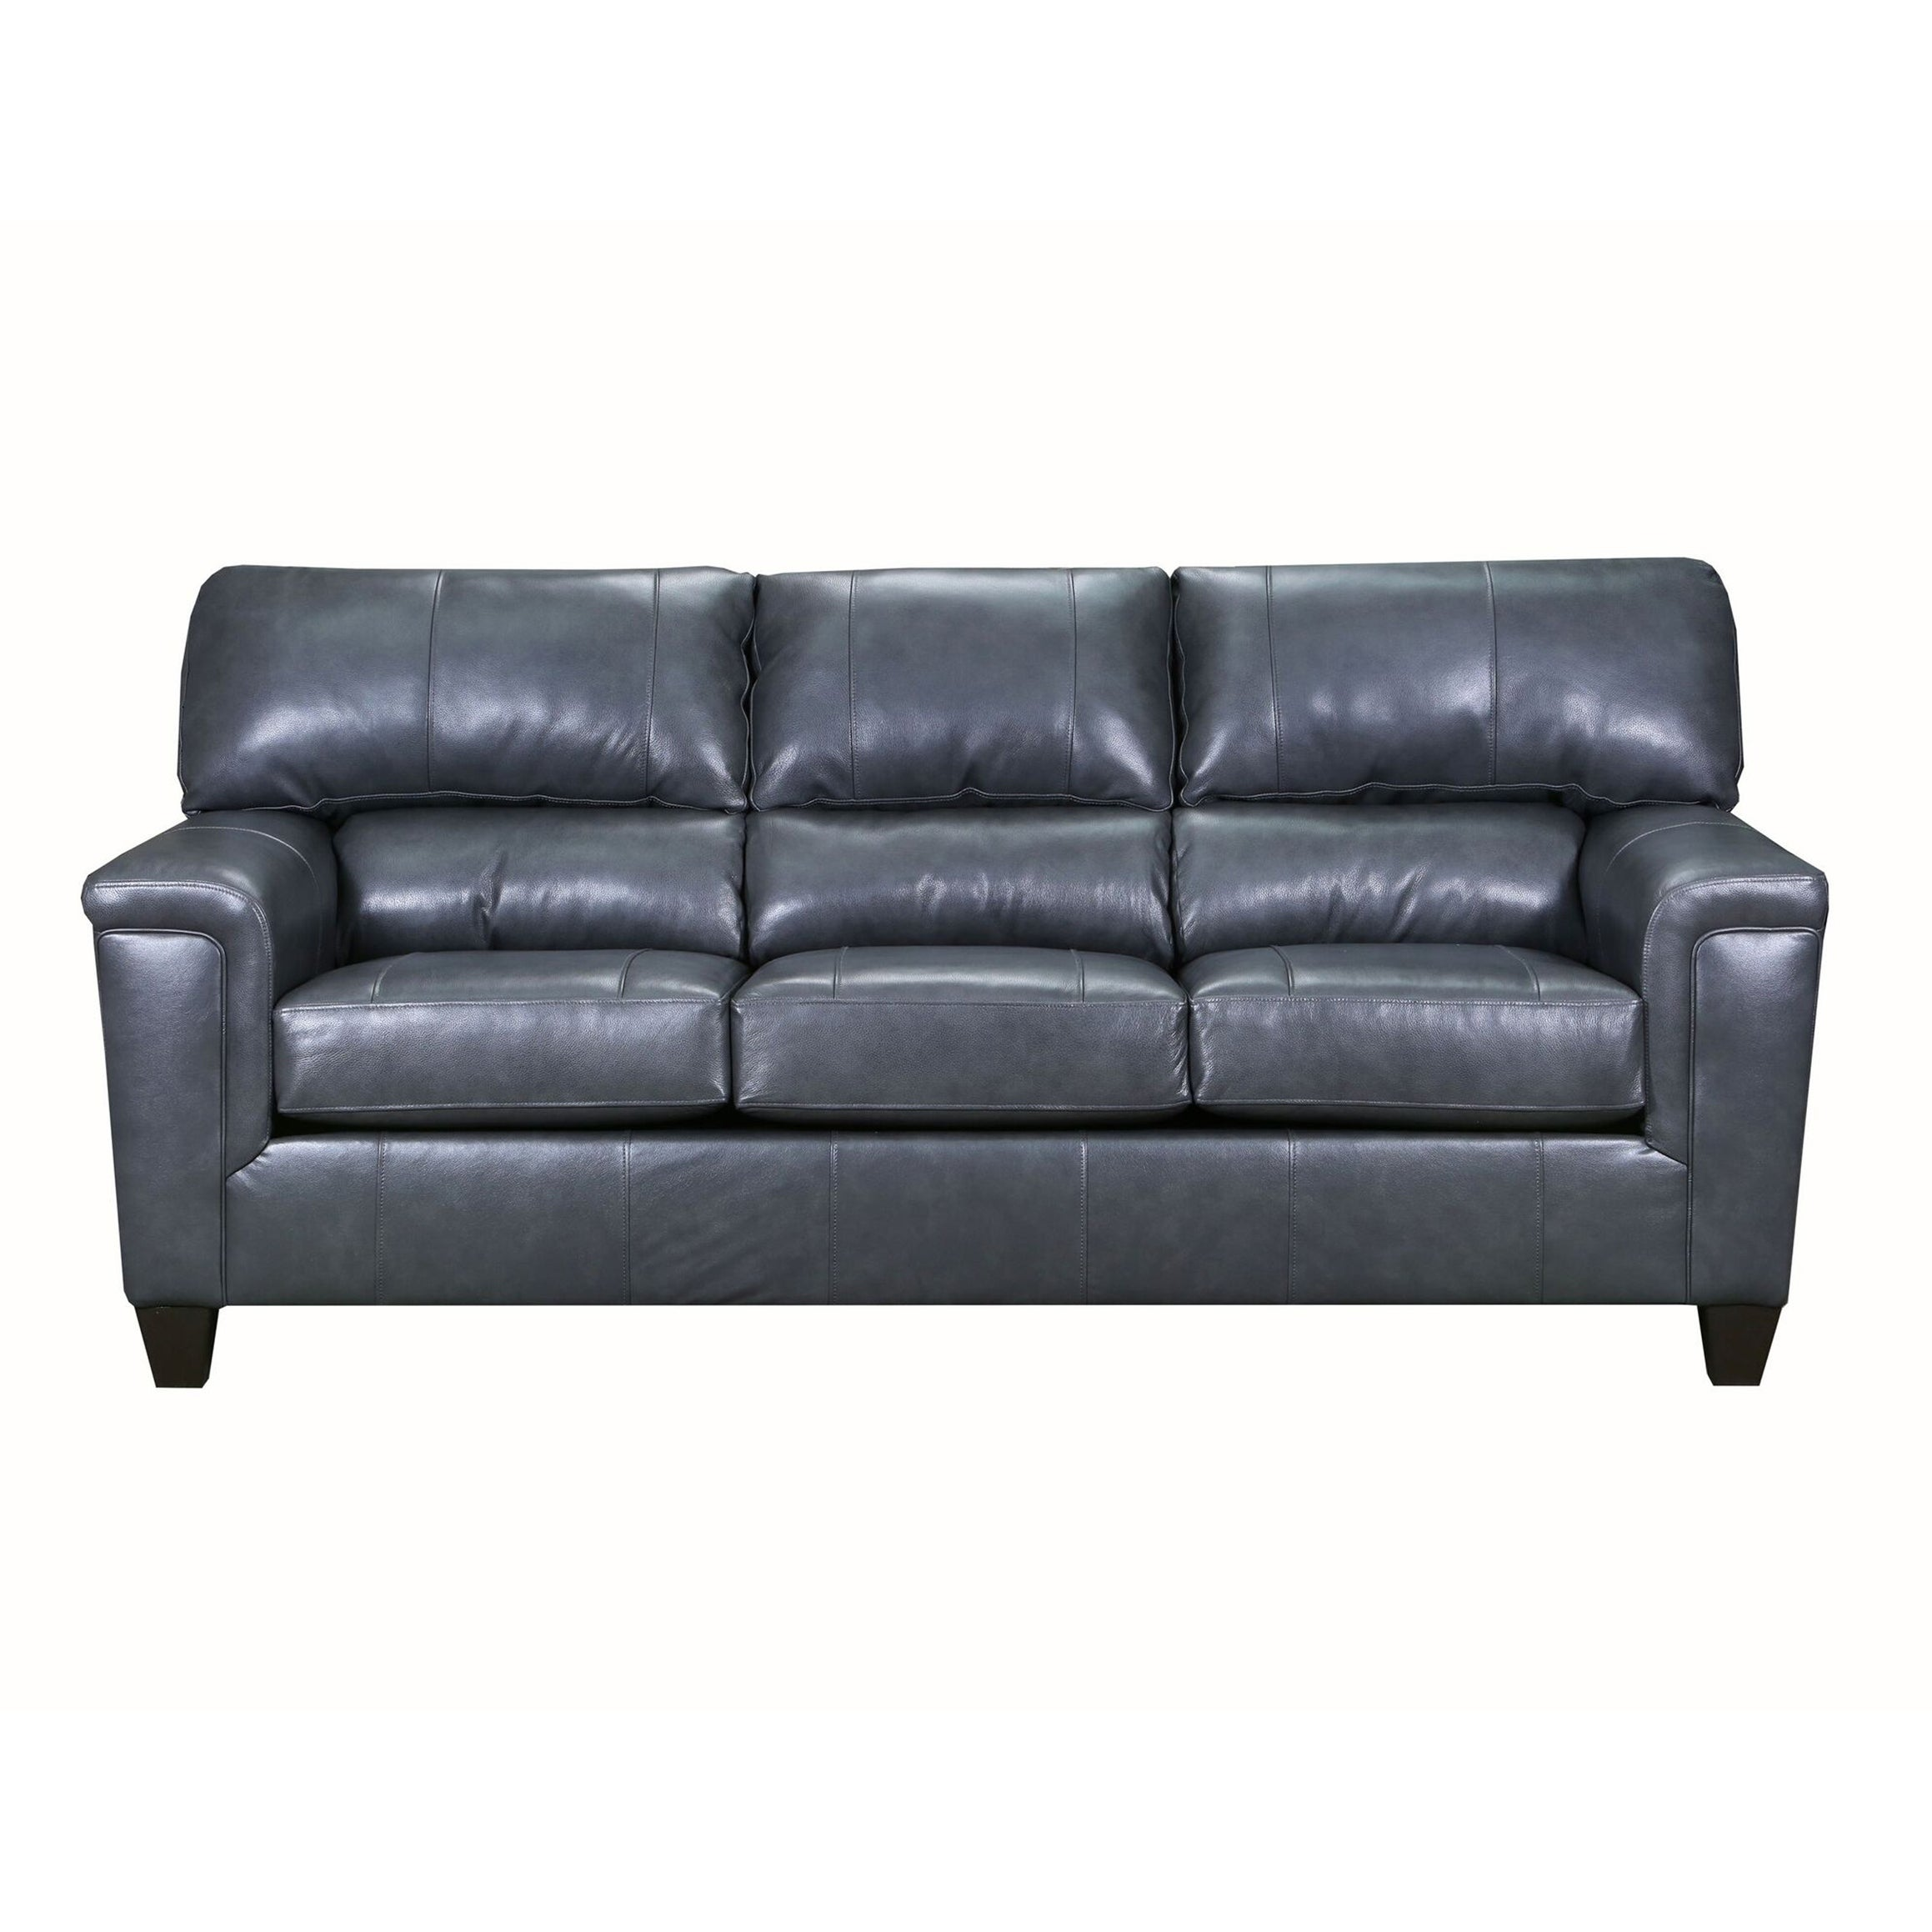 David Top Grain Leather Queen Sleeper Sofa Free Shipping Today 25627691